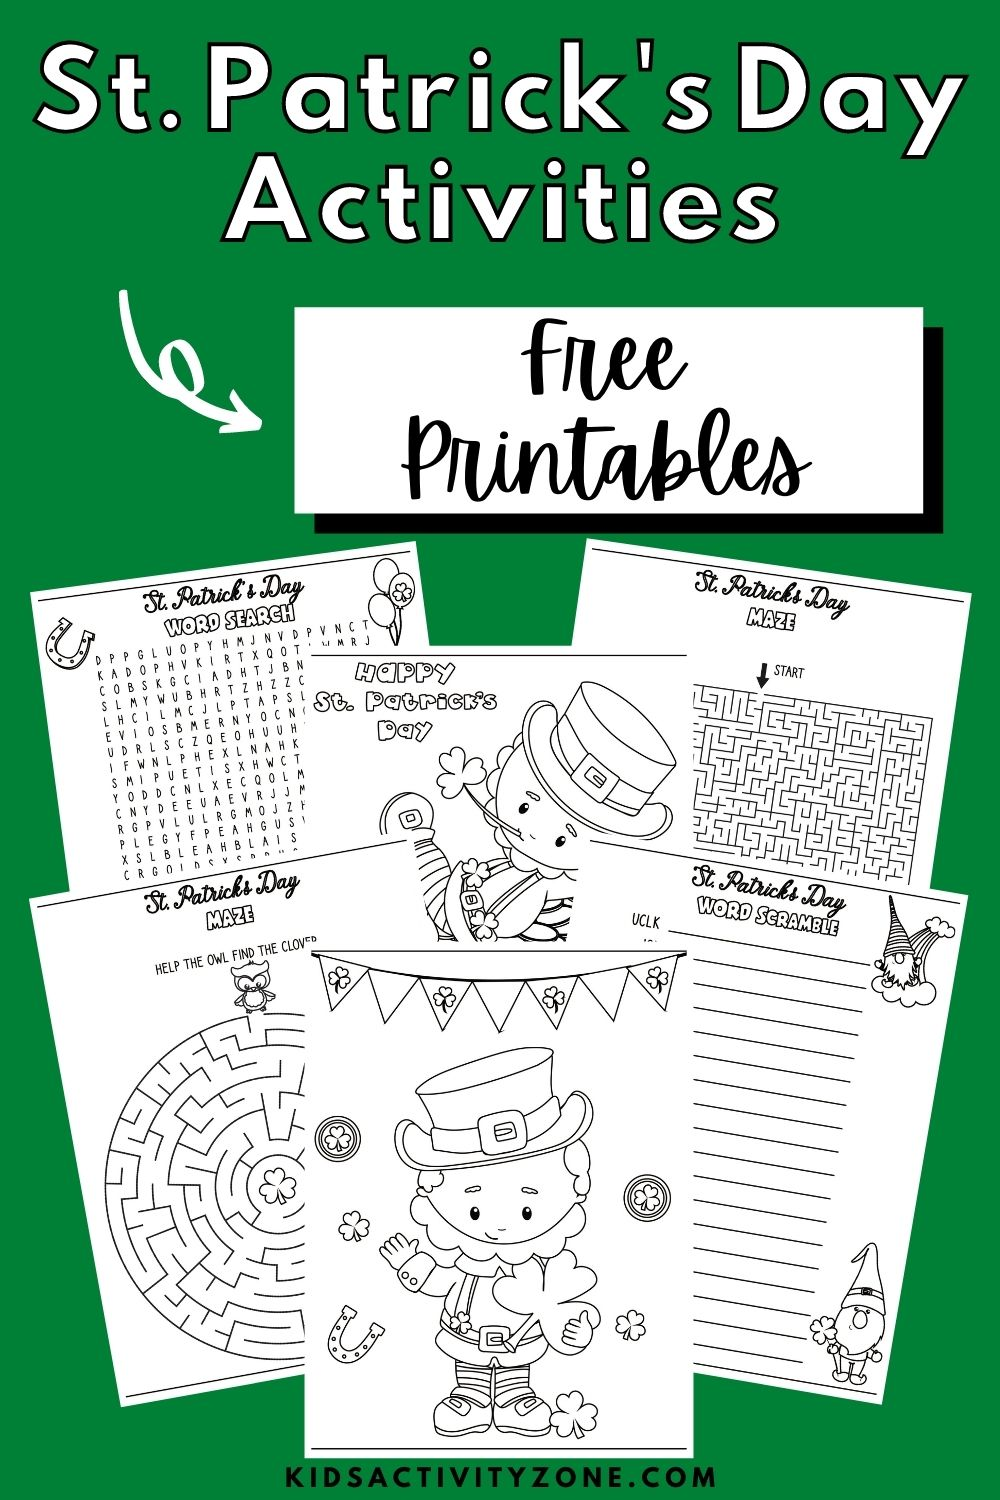 St. Patrick's Day Printable Activities for kids! These activities are so much and perfect to celebrate St. Patrick's Day with plus it's a free download. It includes coloring pages, mazes, word search, anagram and more! Print these off and have fun in your classroom, St. Patrick's Day party, at home or whenever!